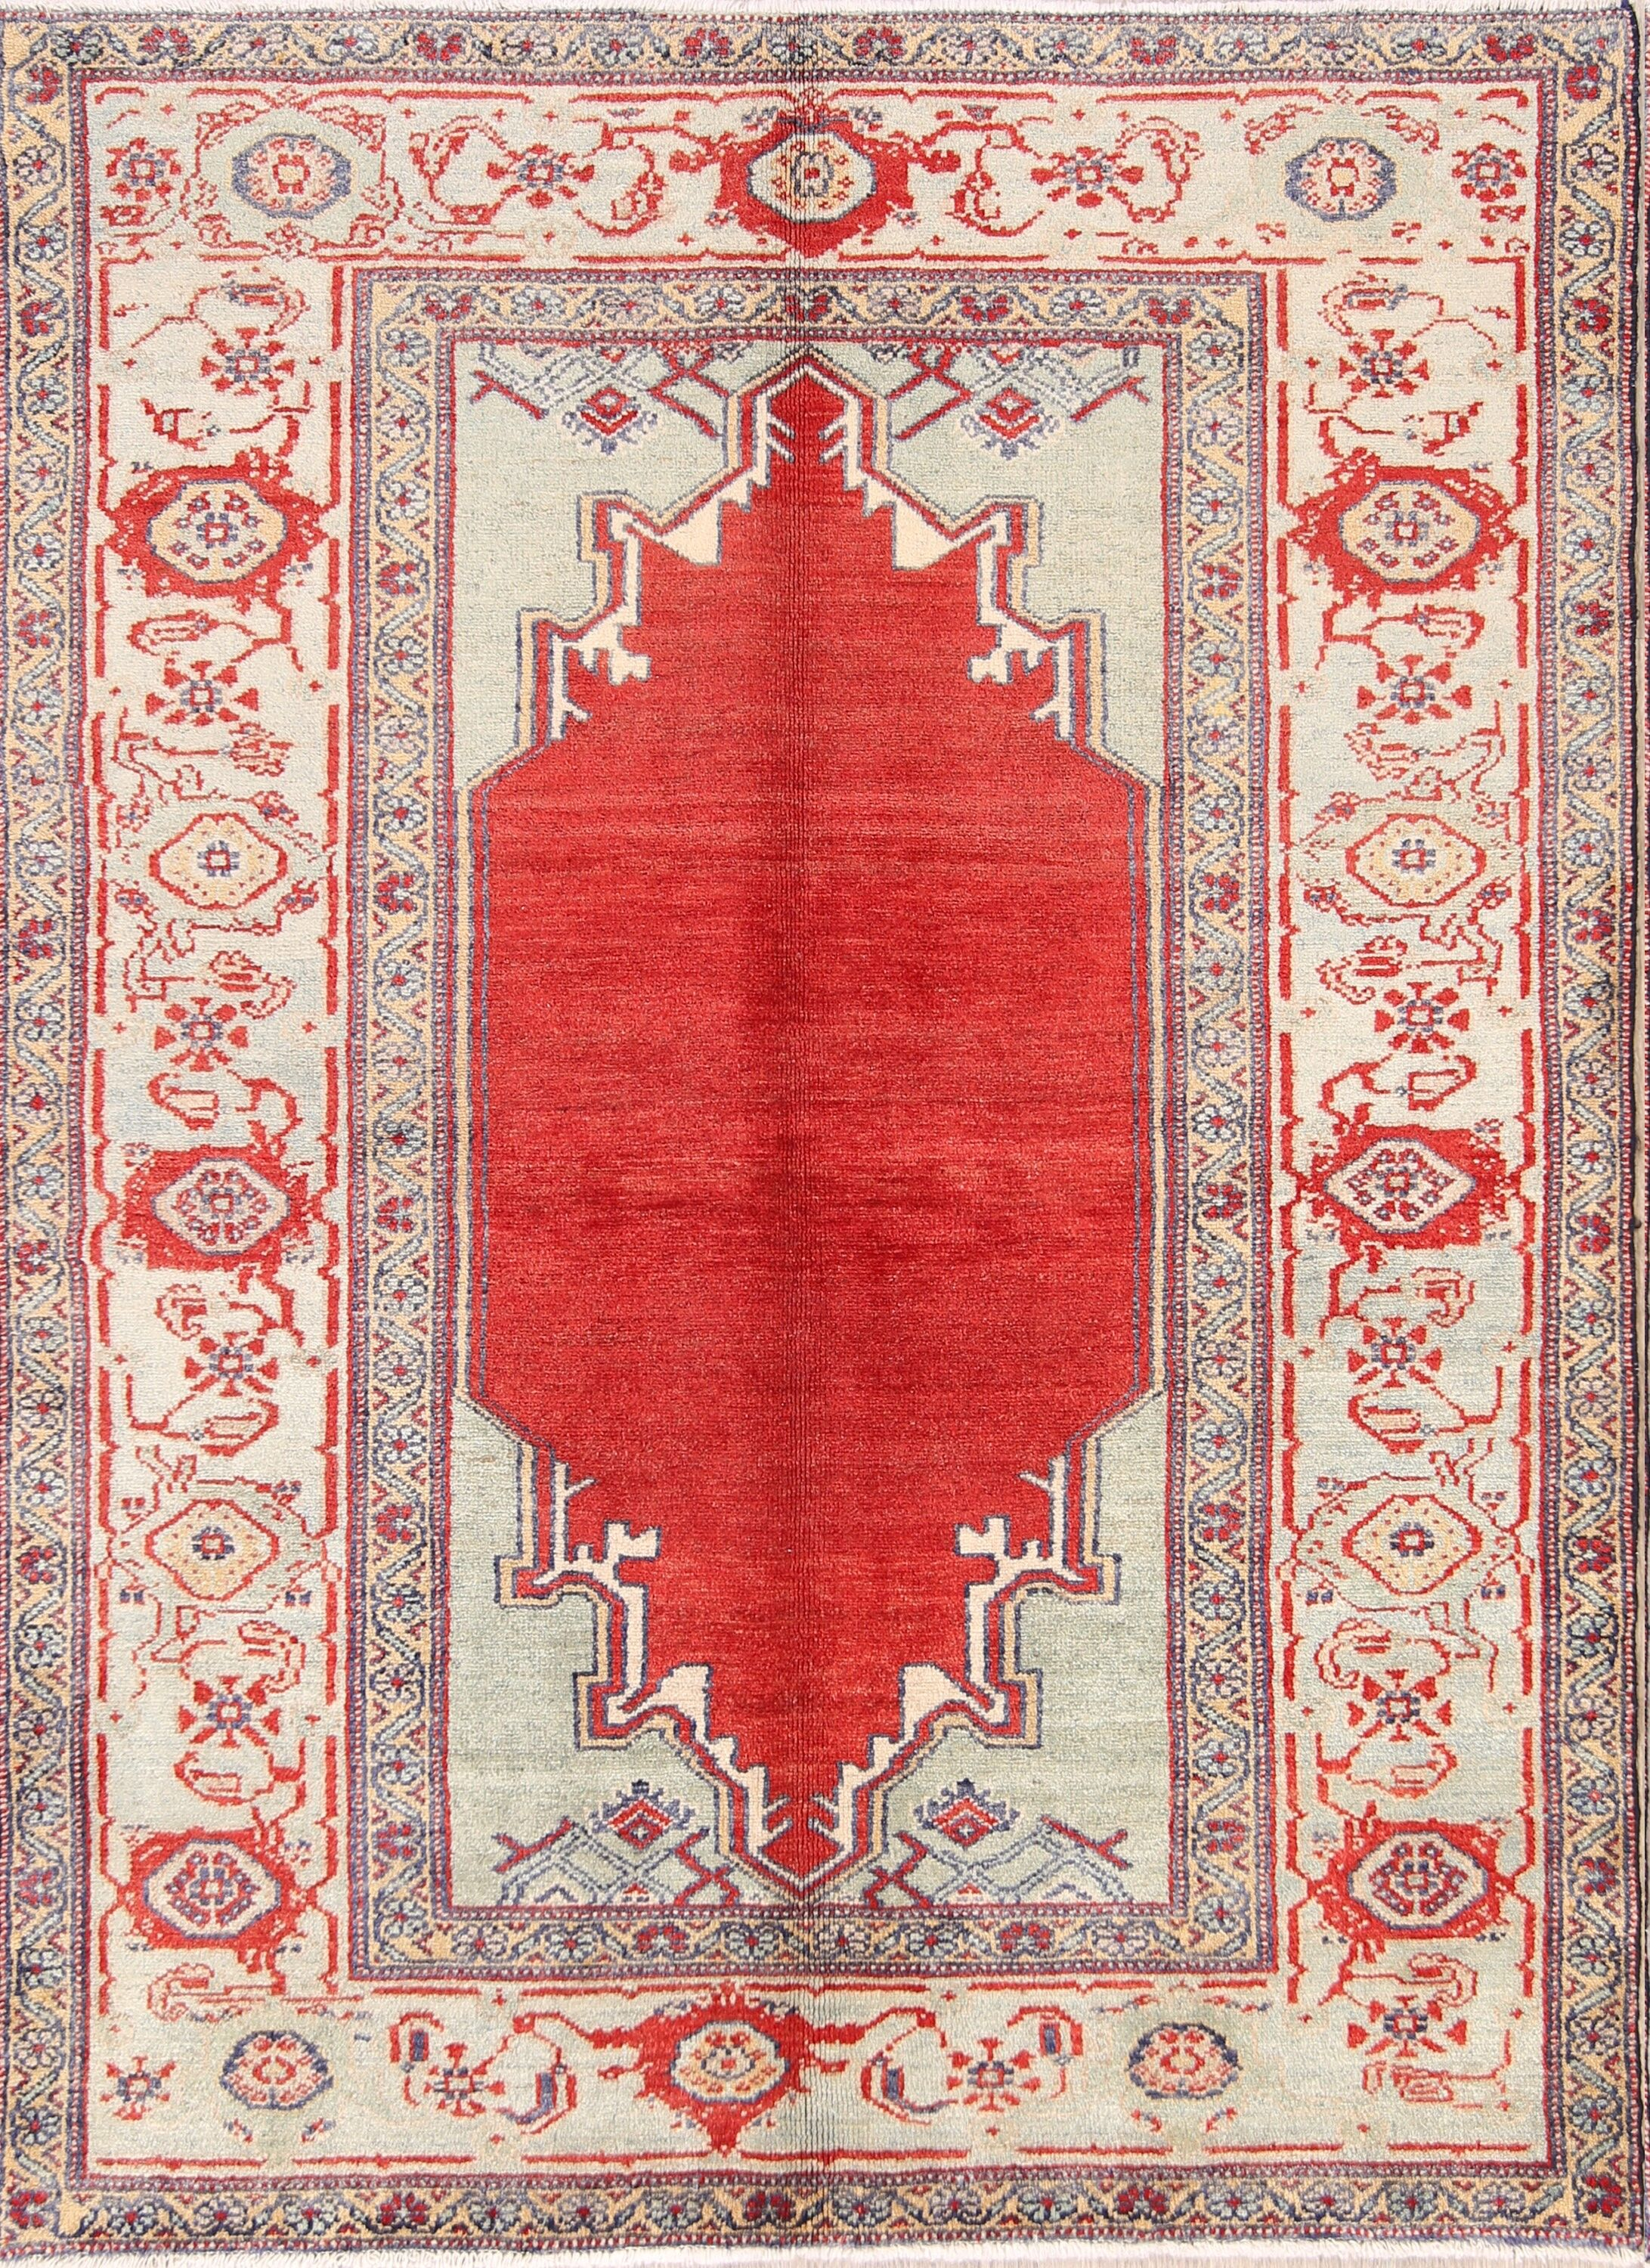 One-of-a-Kind Geometric Sultanabad Oushak Persian Hand-Knotted 4'10